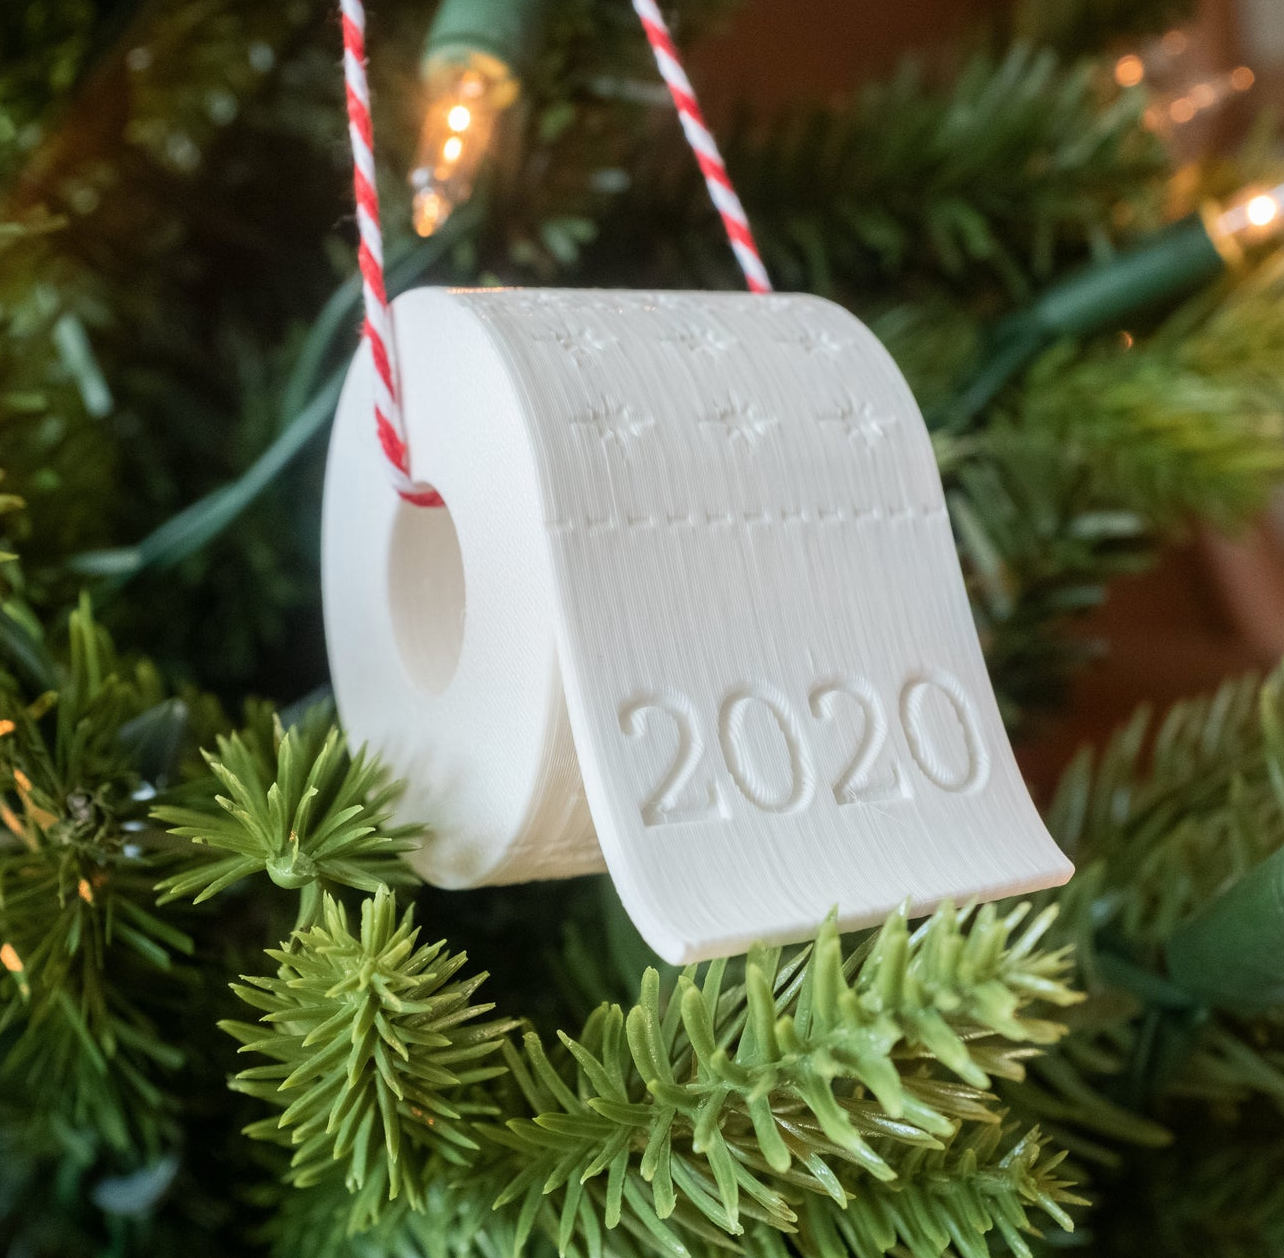 Put A Virus On Your Christmas Tree With These Covid Themed Ornaments Washingtonian Dc